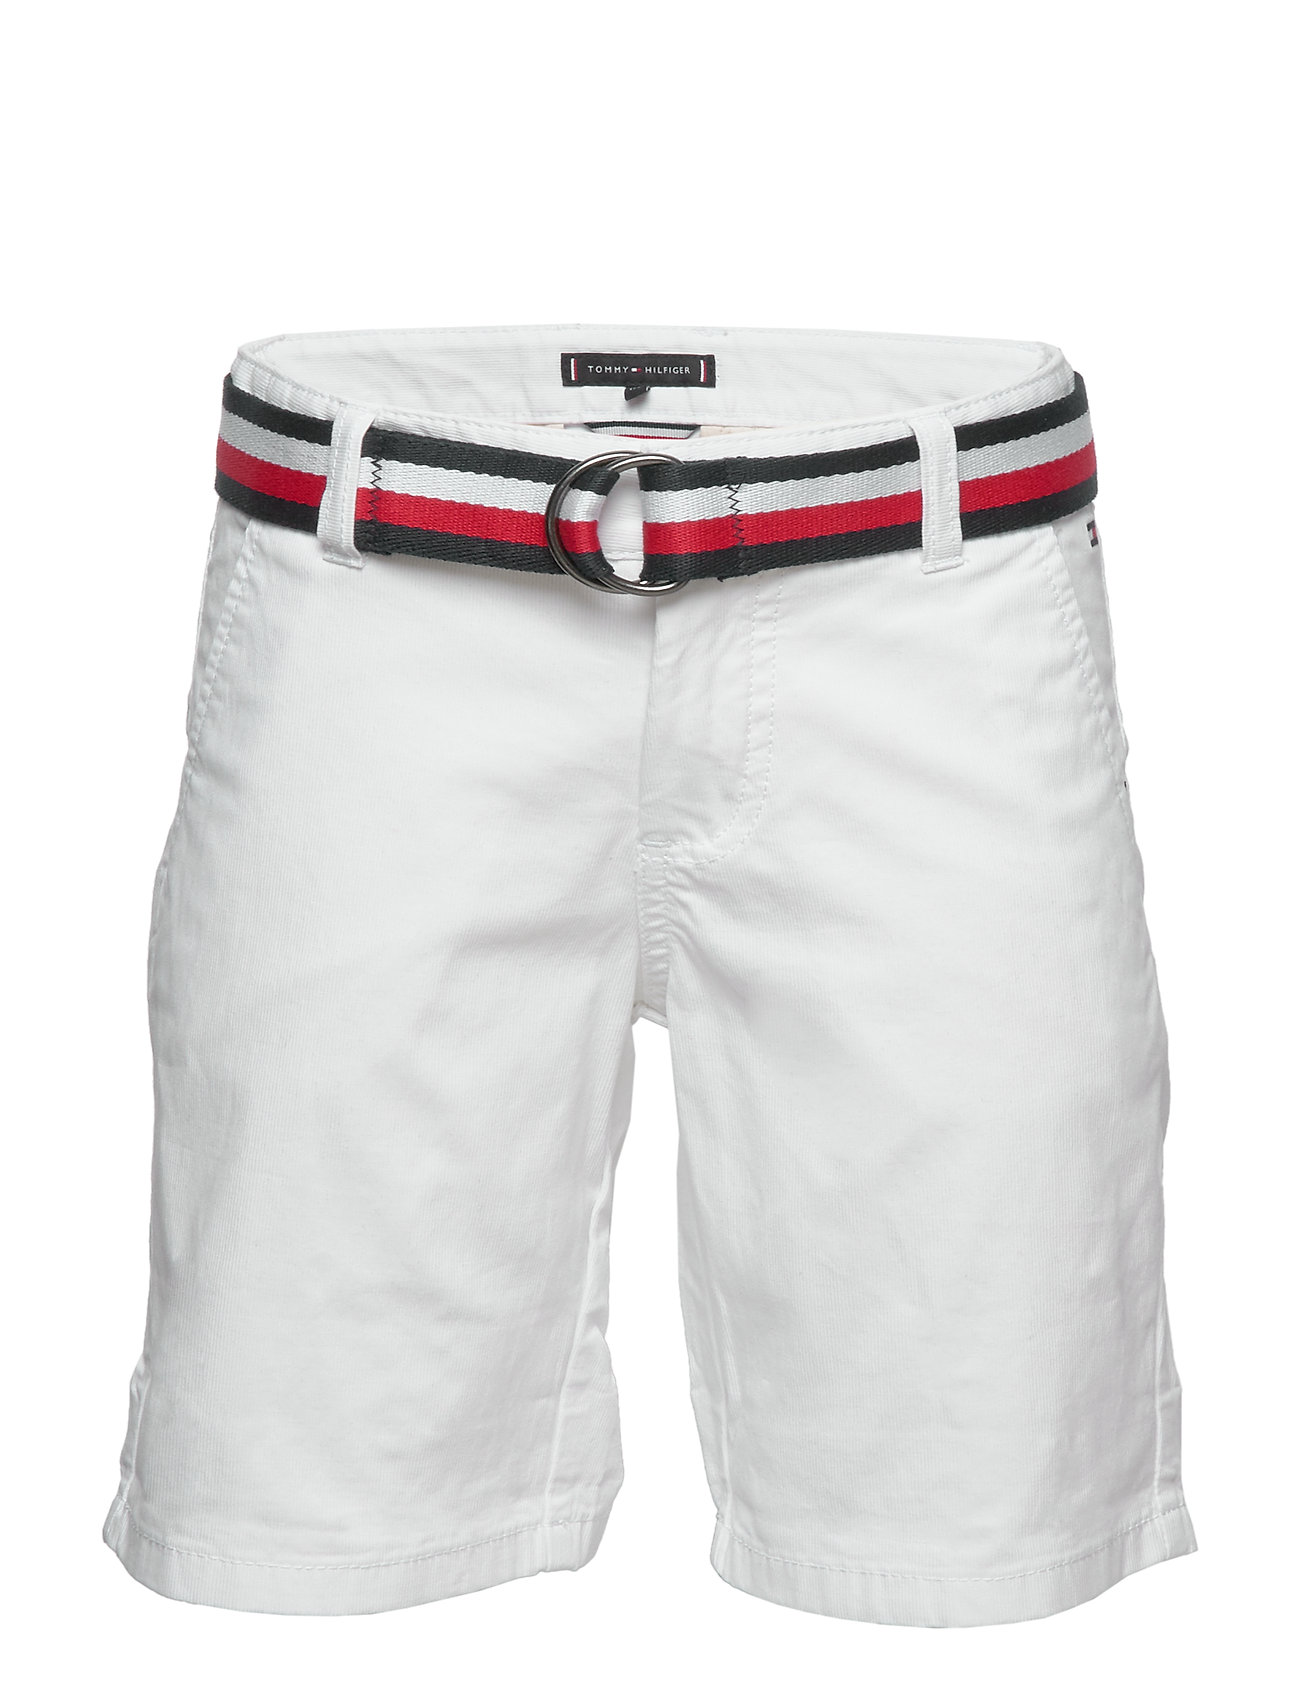 Tommy Hilfiger ESSENTIAL BELTED CHINO SHORTS - WHITE 658-170